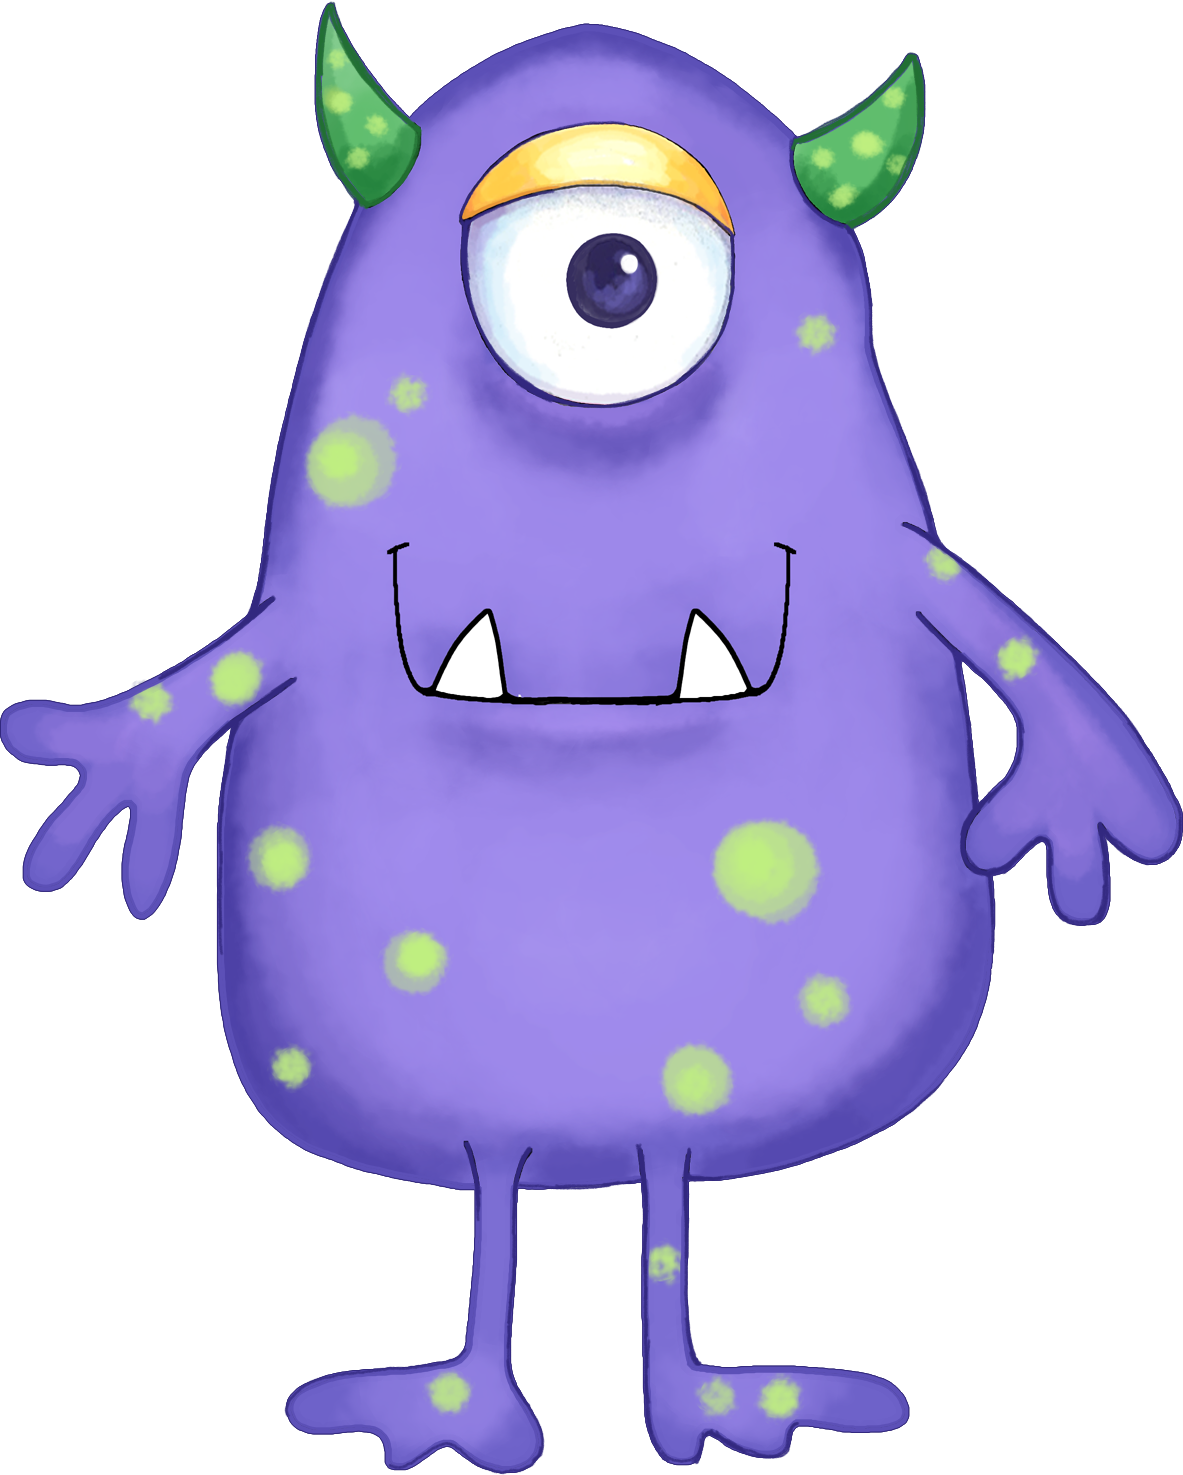 Pink Eyes clipart baby monster #11